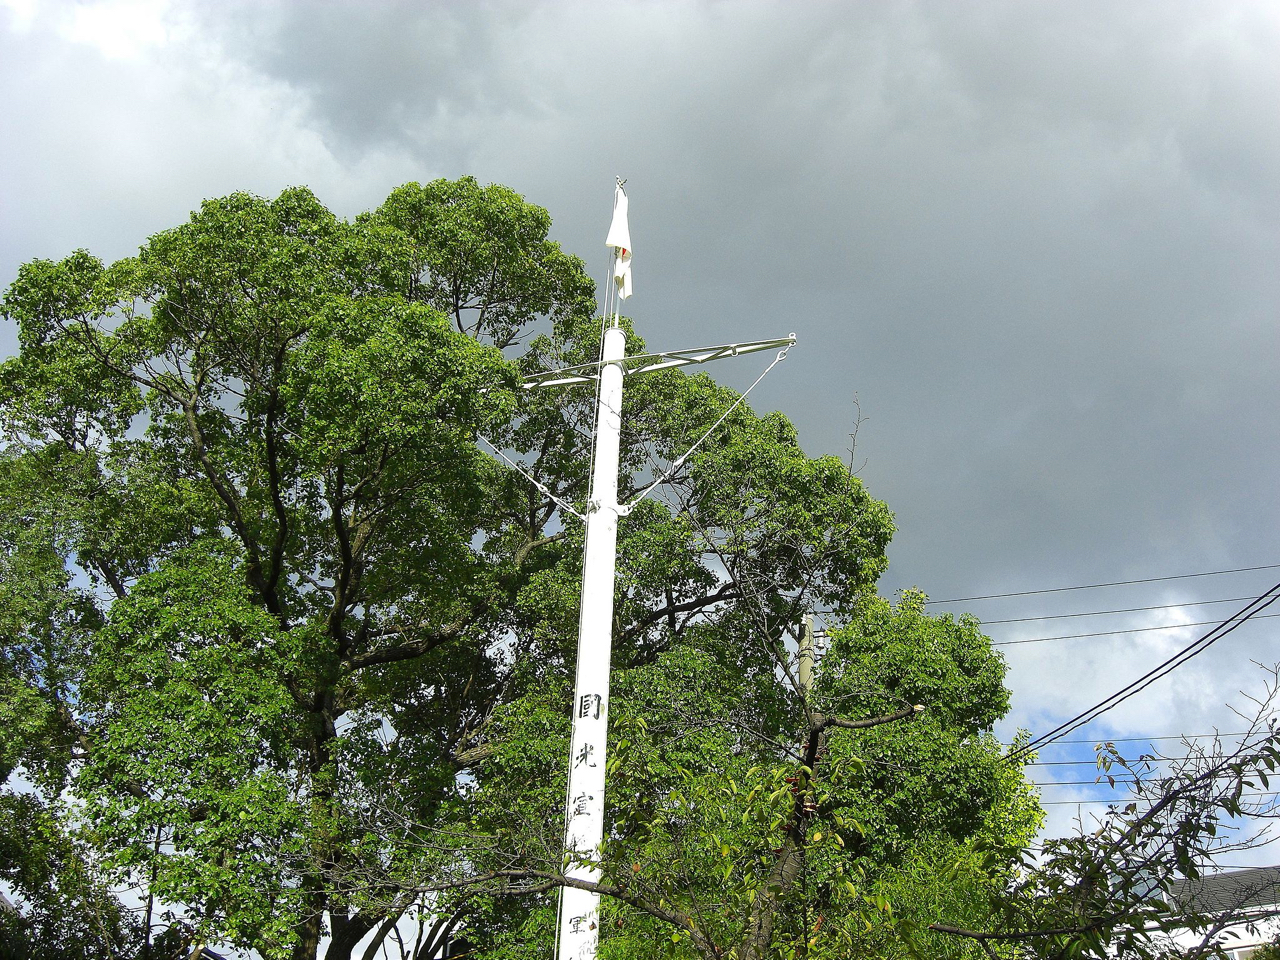 The  mast of the Haruna  By  Cahry-hamayan (Self-photographed)